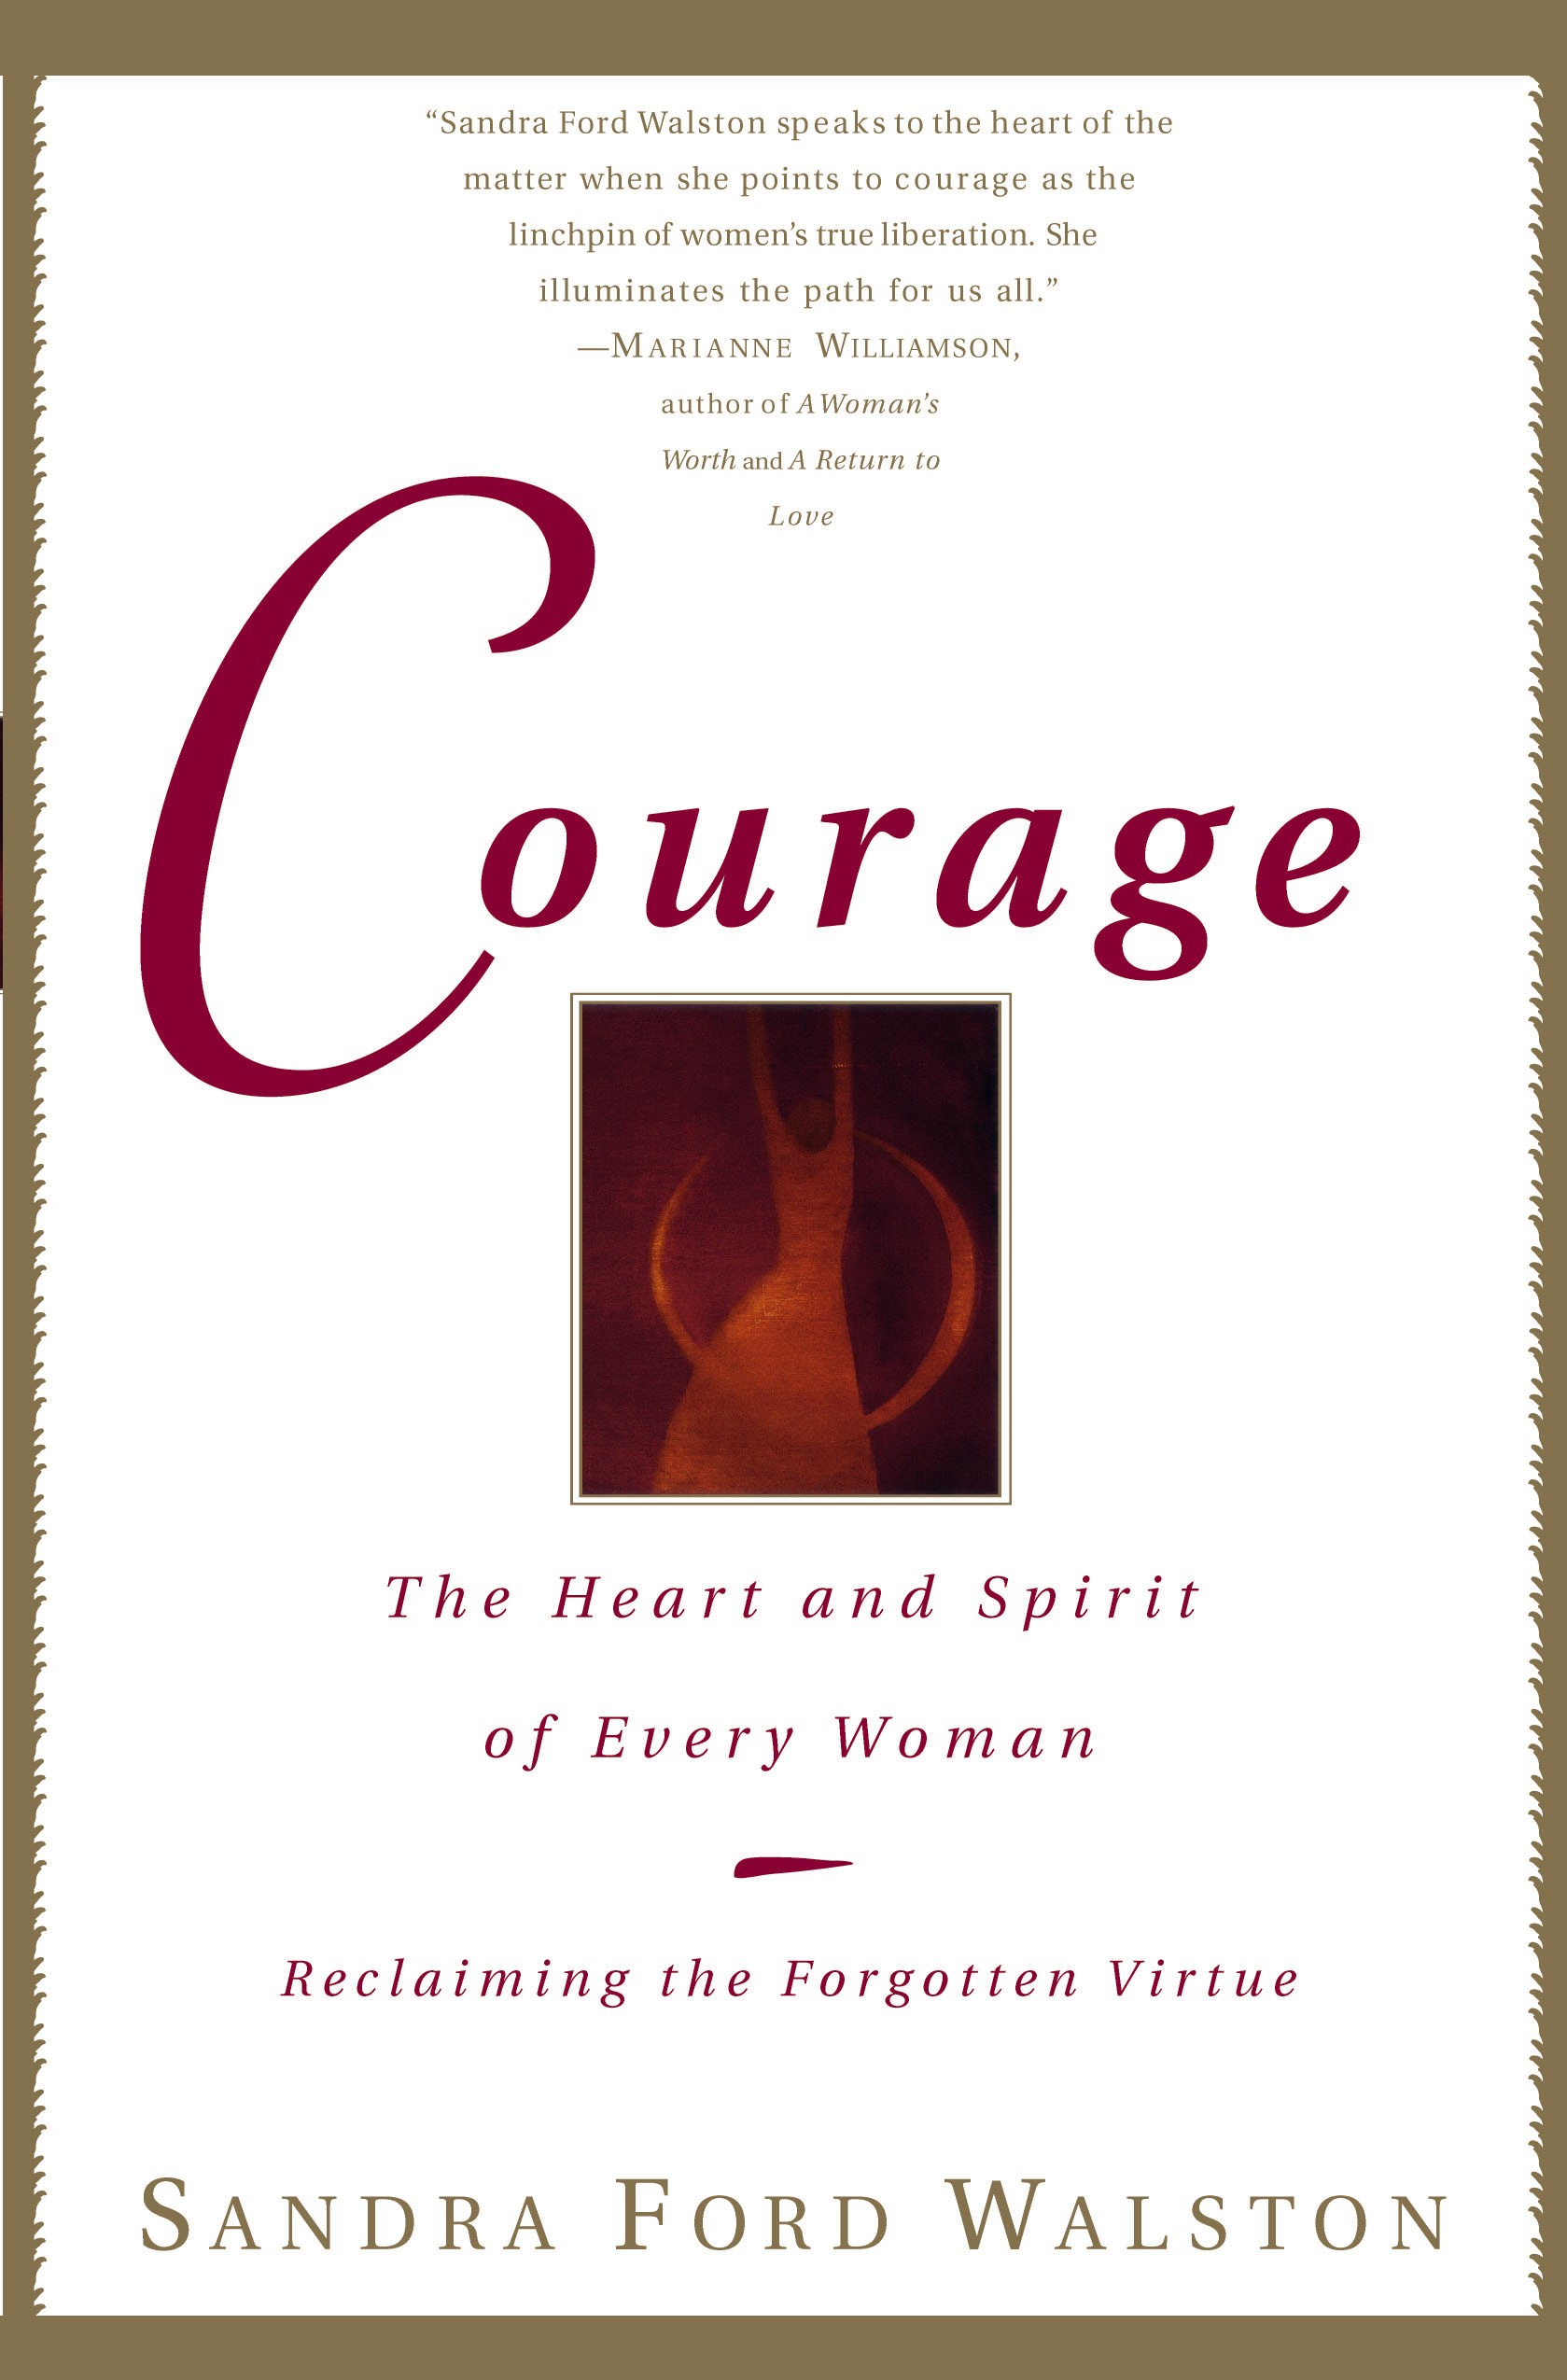 COURAGE The Heart and Spirit of Every Woman